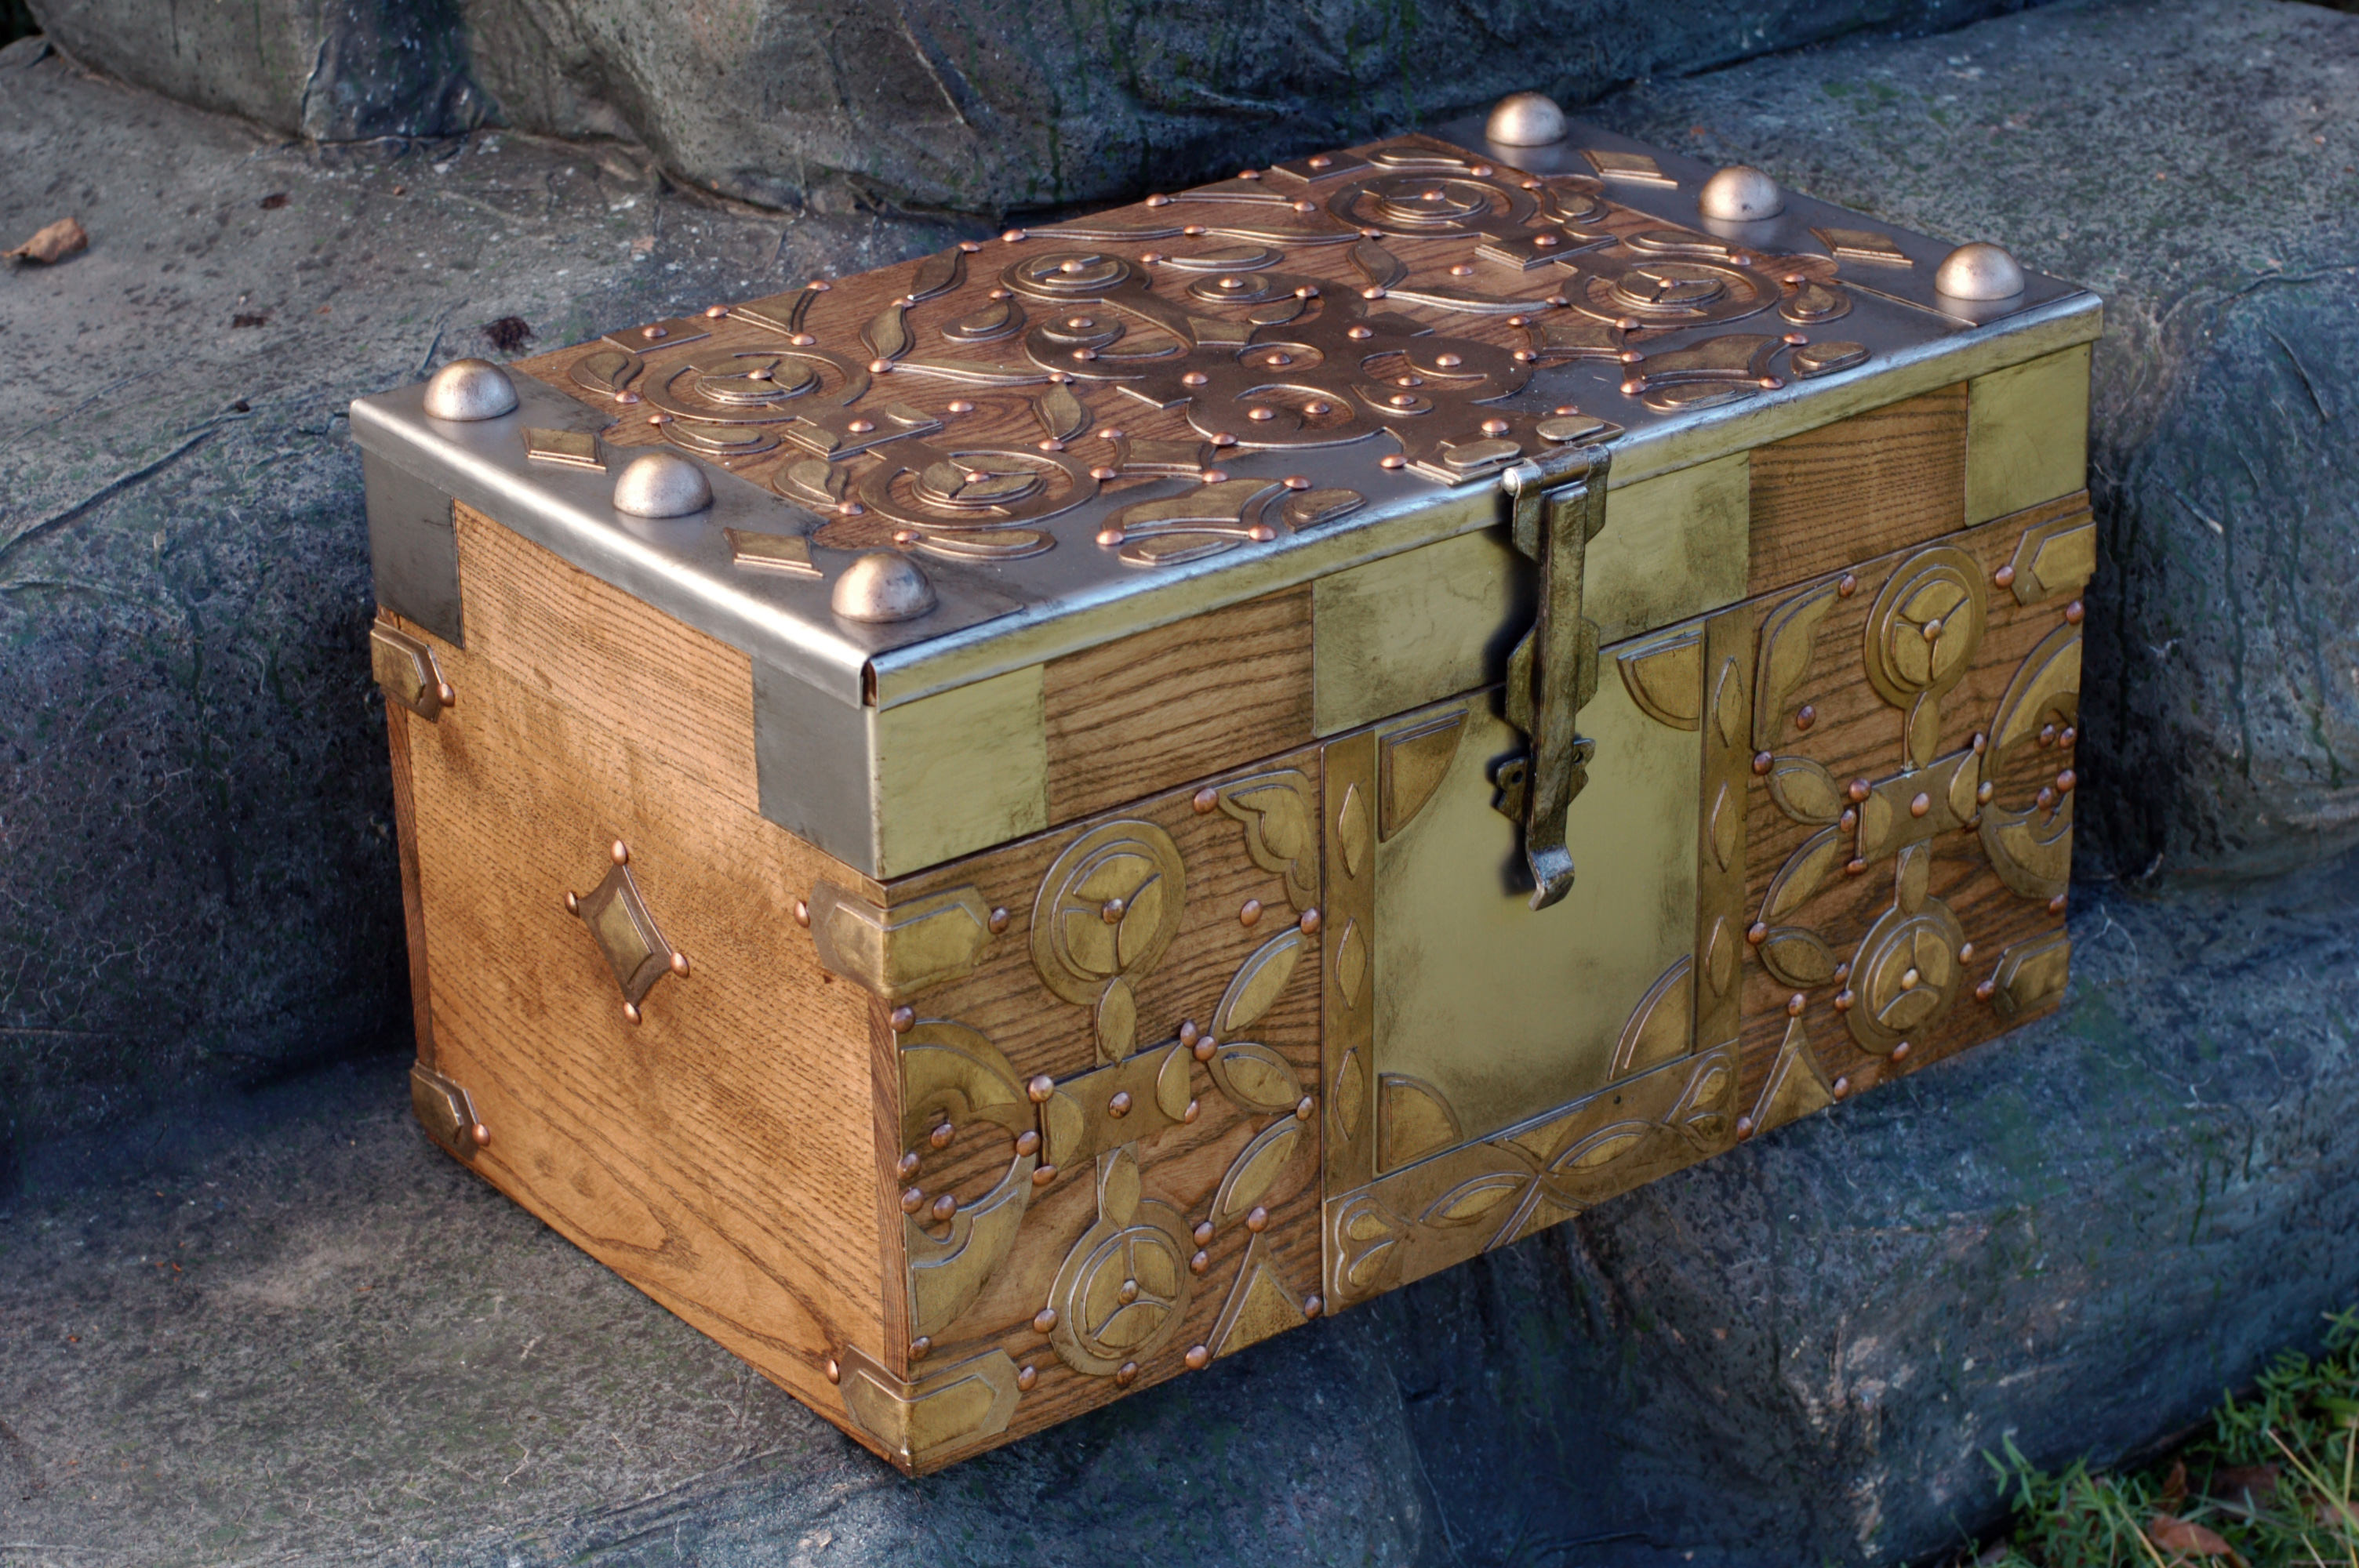 Daenerys' Dragon Egg Chest replica